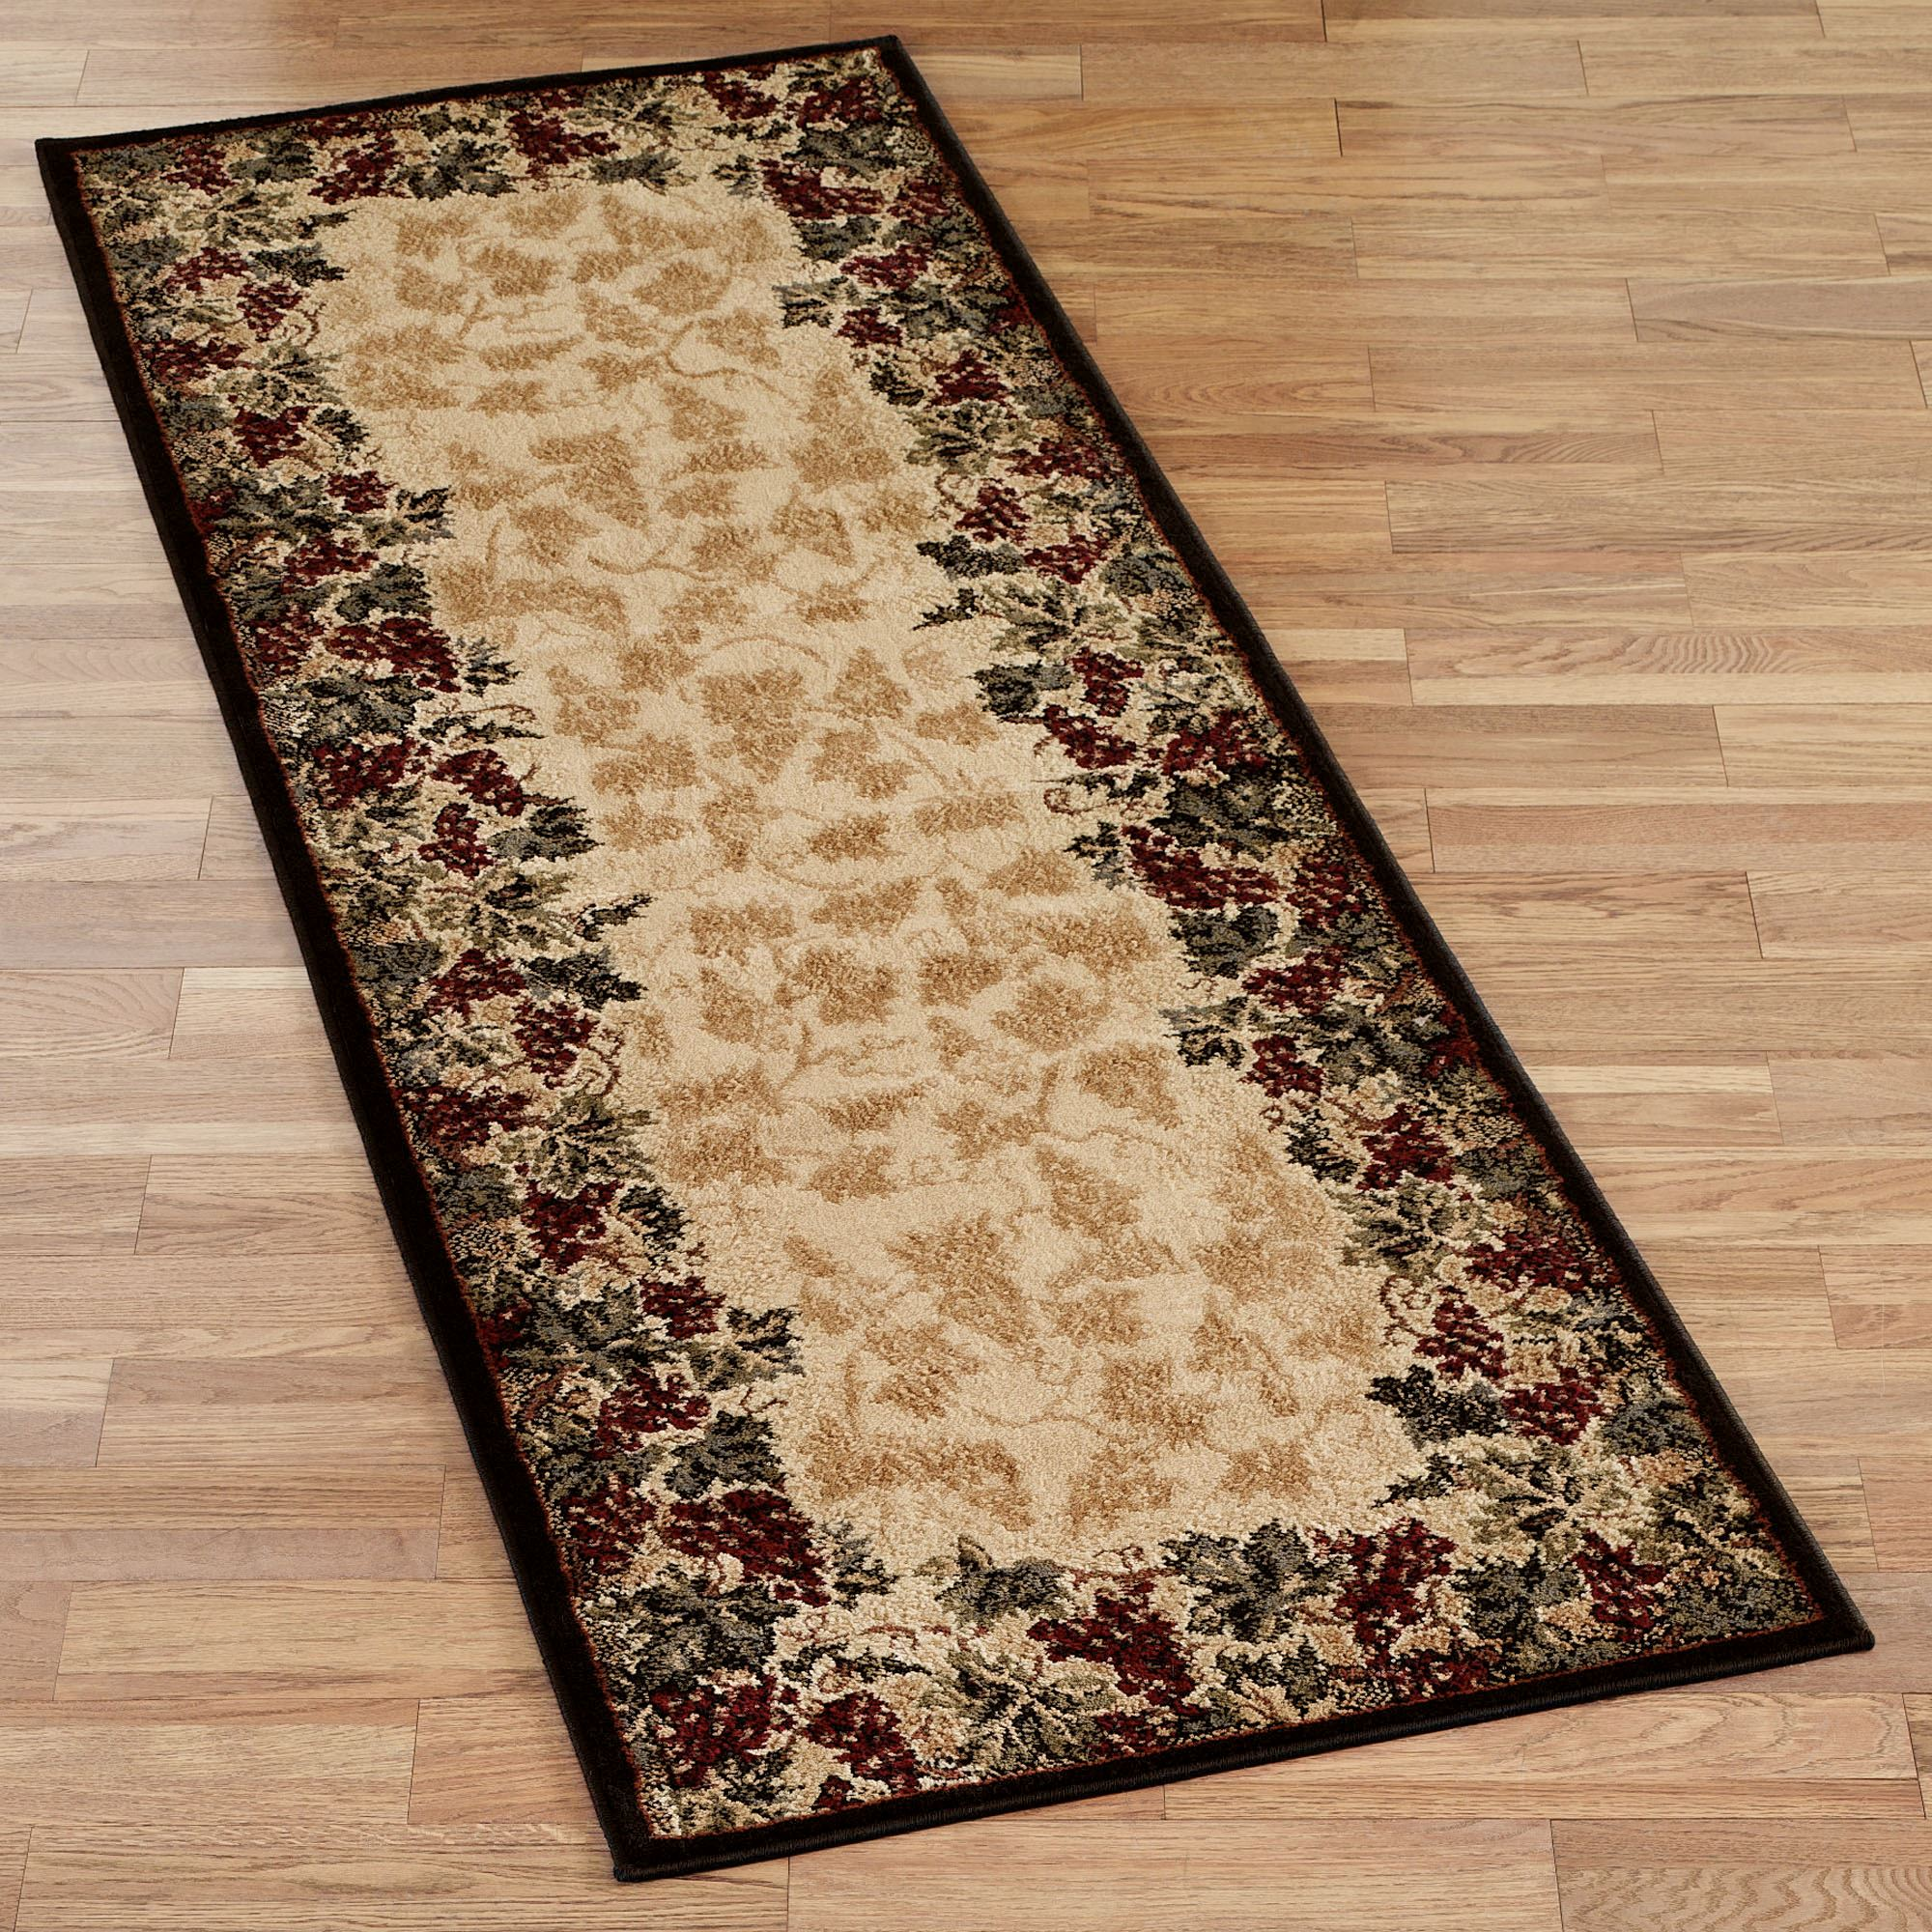 runner rug beaujolais ii grape rug runner HODTLZQ